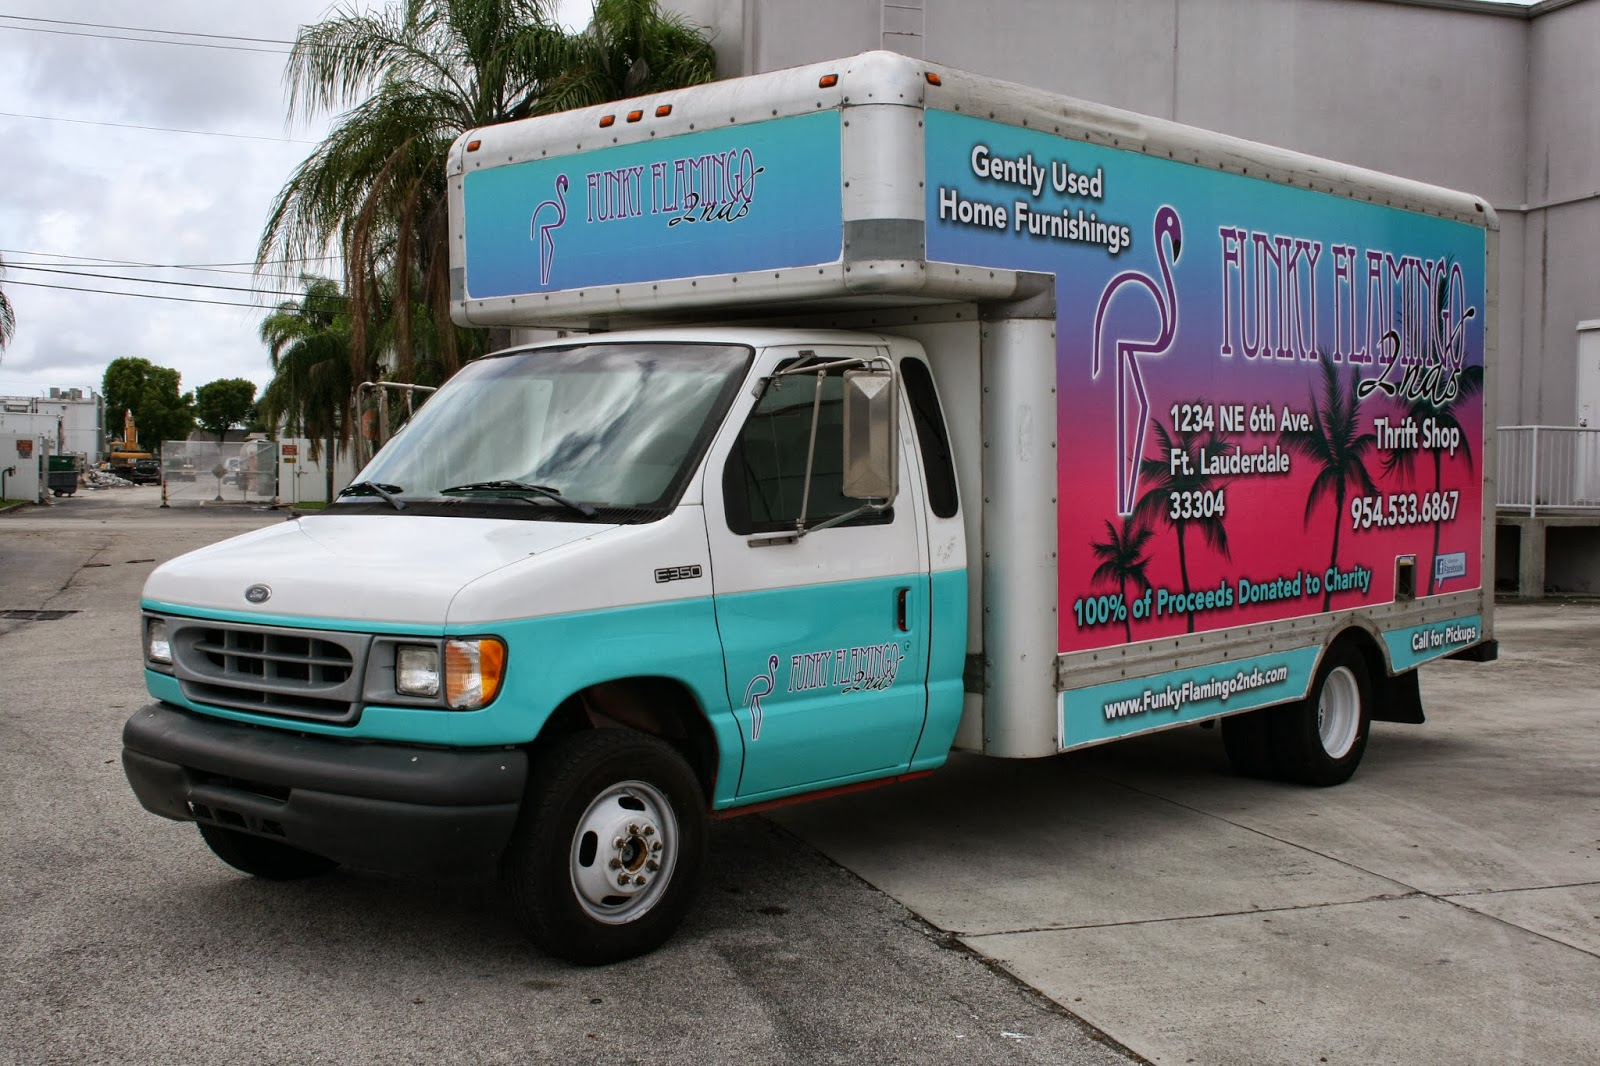 Http www carwrapsolutions com box truck wraps graphics fort lauderdale miami palm beach florida html